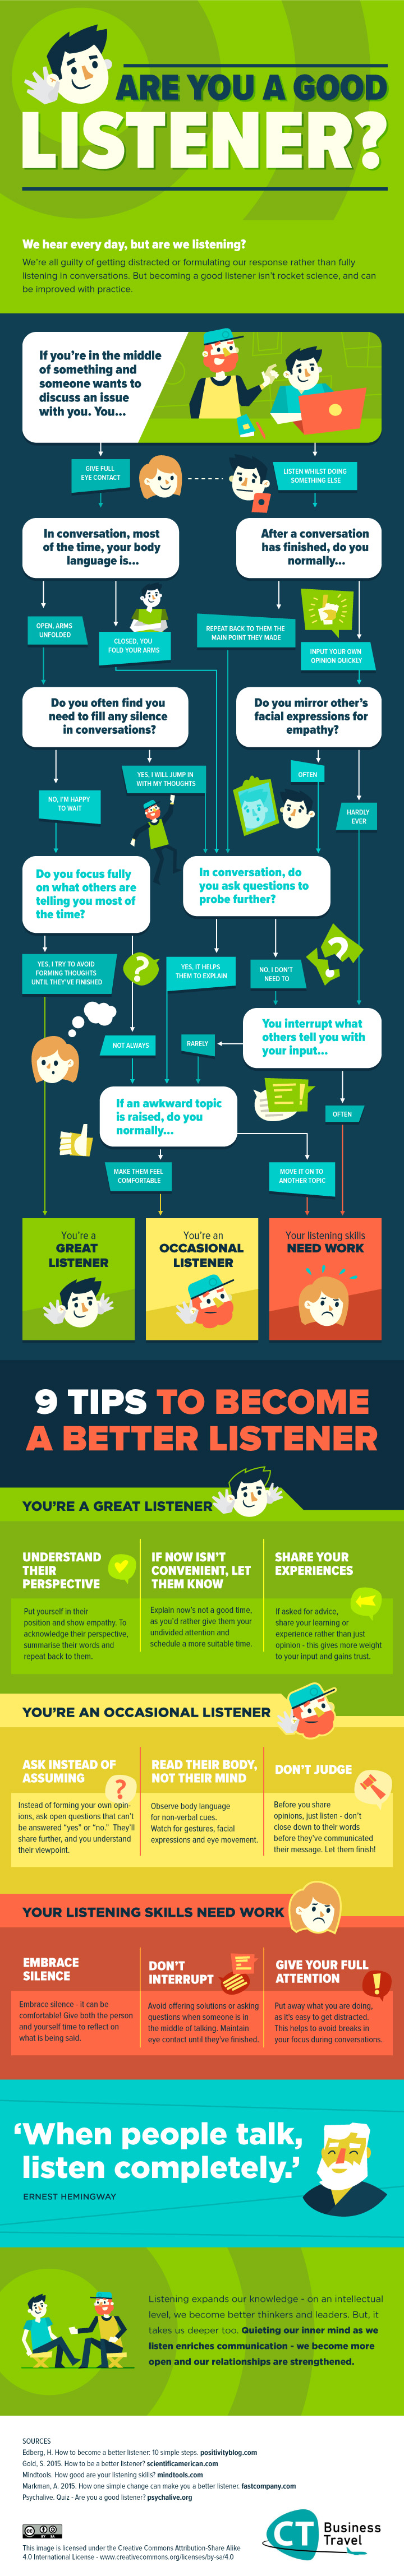 Are You A Good Listener? [Infographic]